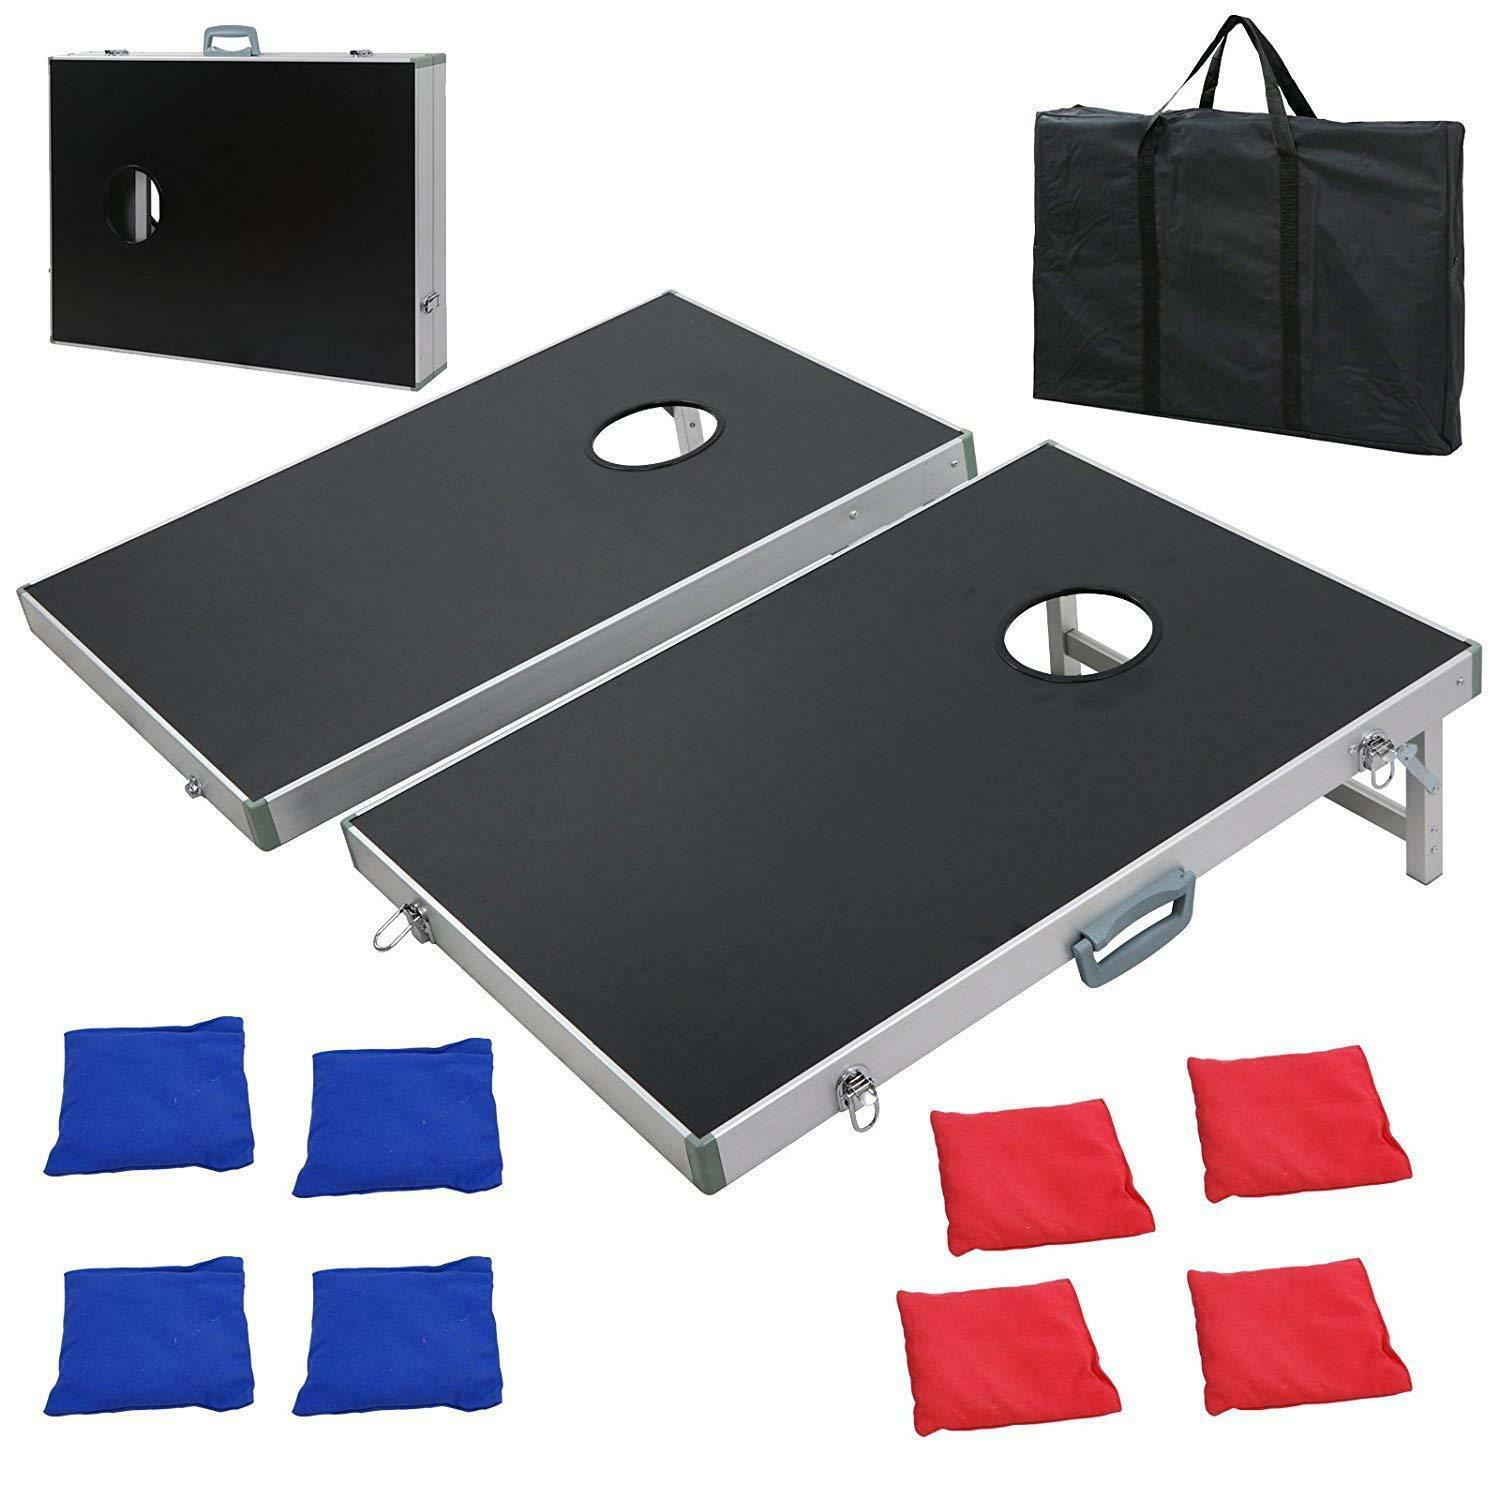 Carrying Bag Storage Board